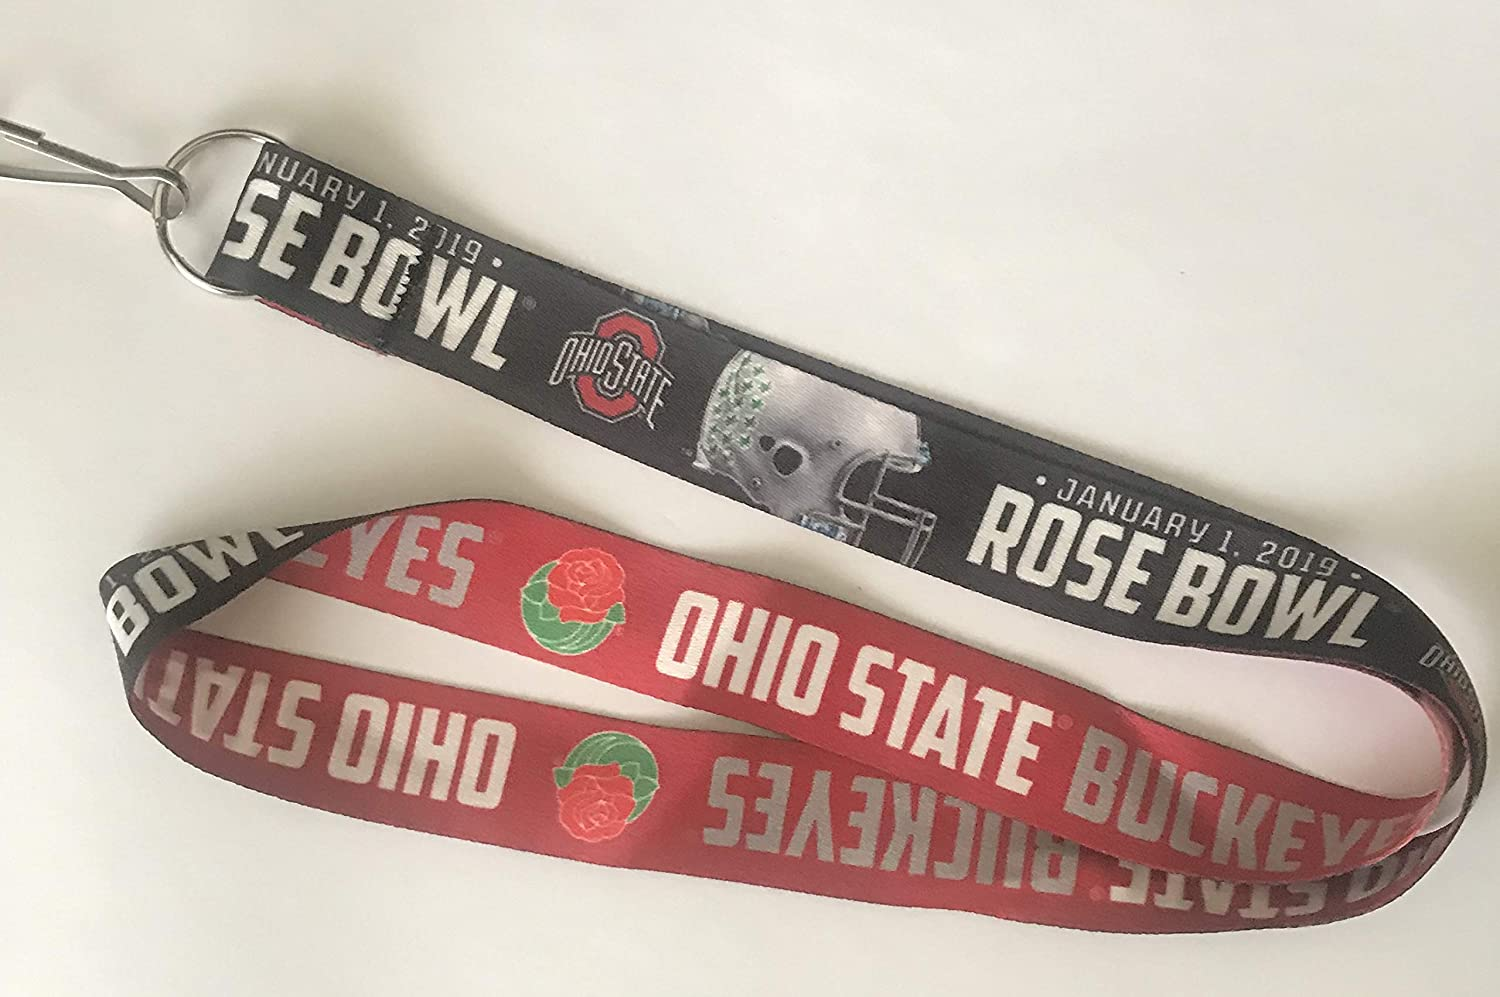 NCAA 2019 Rosebowl Ohio State University Lanyard